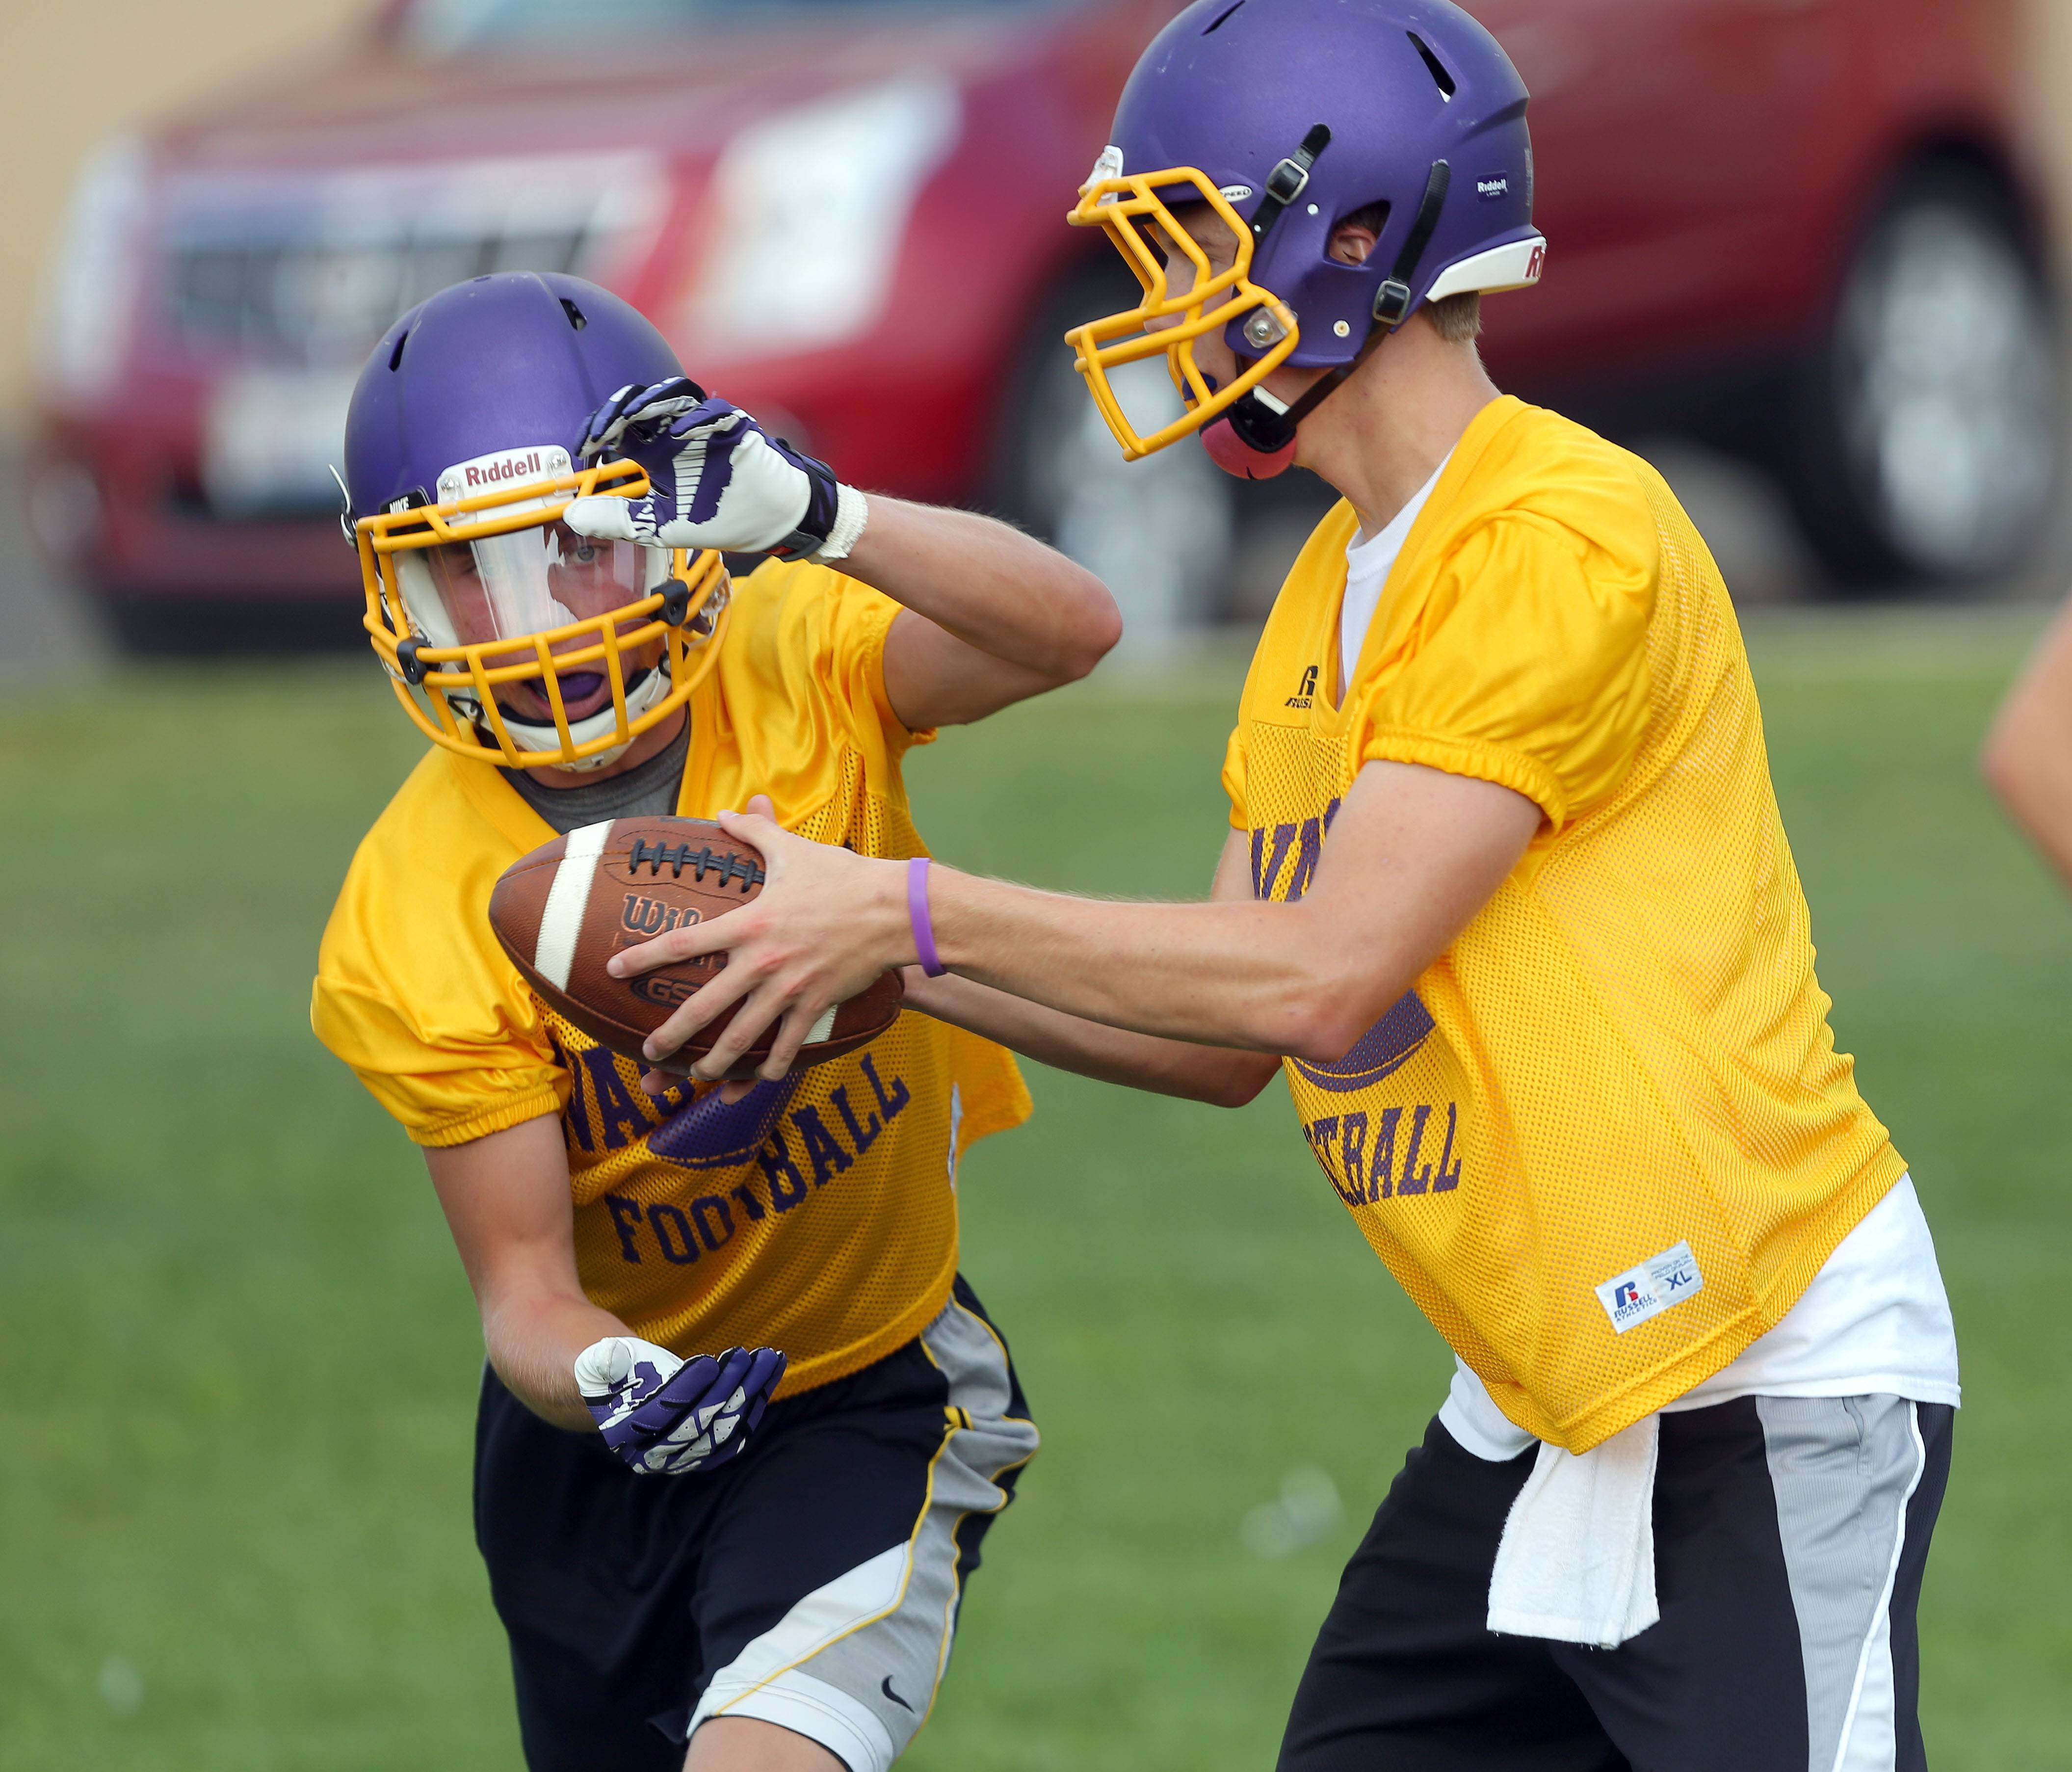 Quarterback Kevin Malisheski, right, hands off to  Tyler Theel during football practice Monday at Wauconda High School.